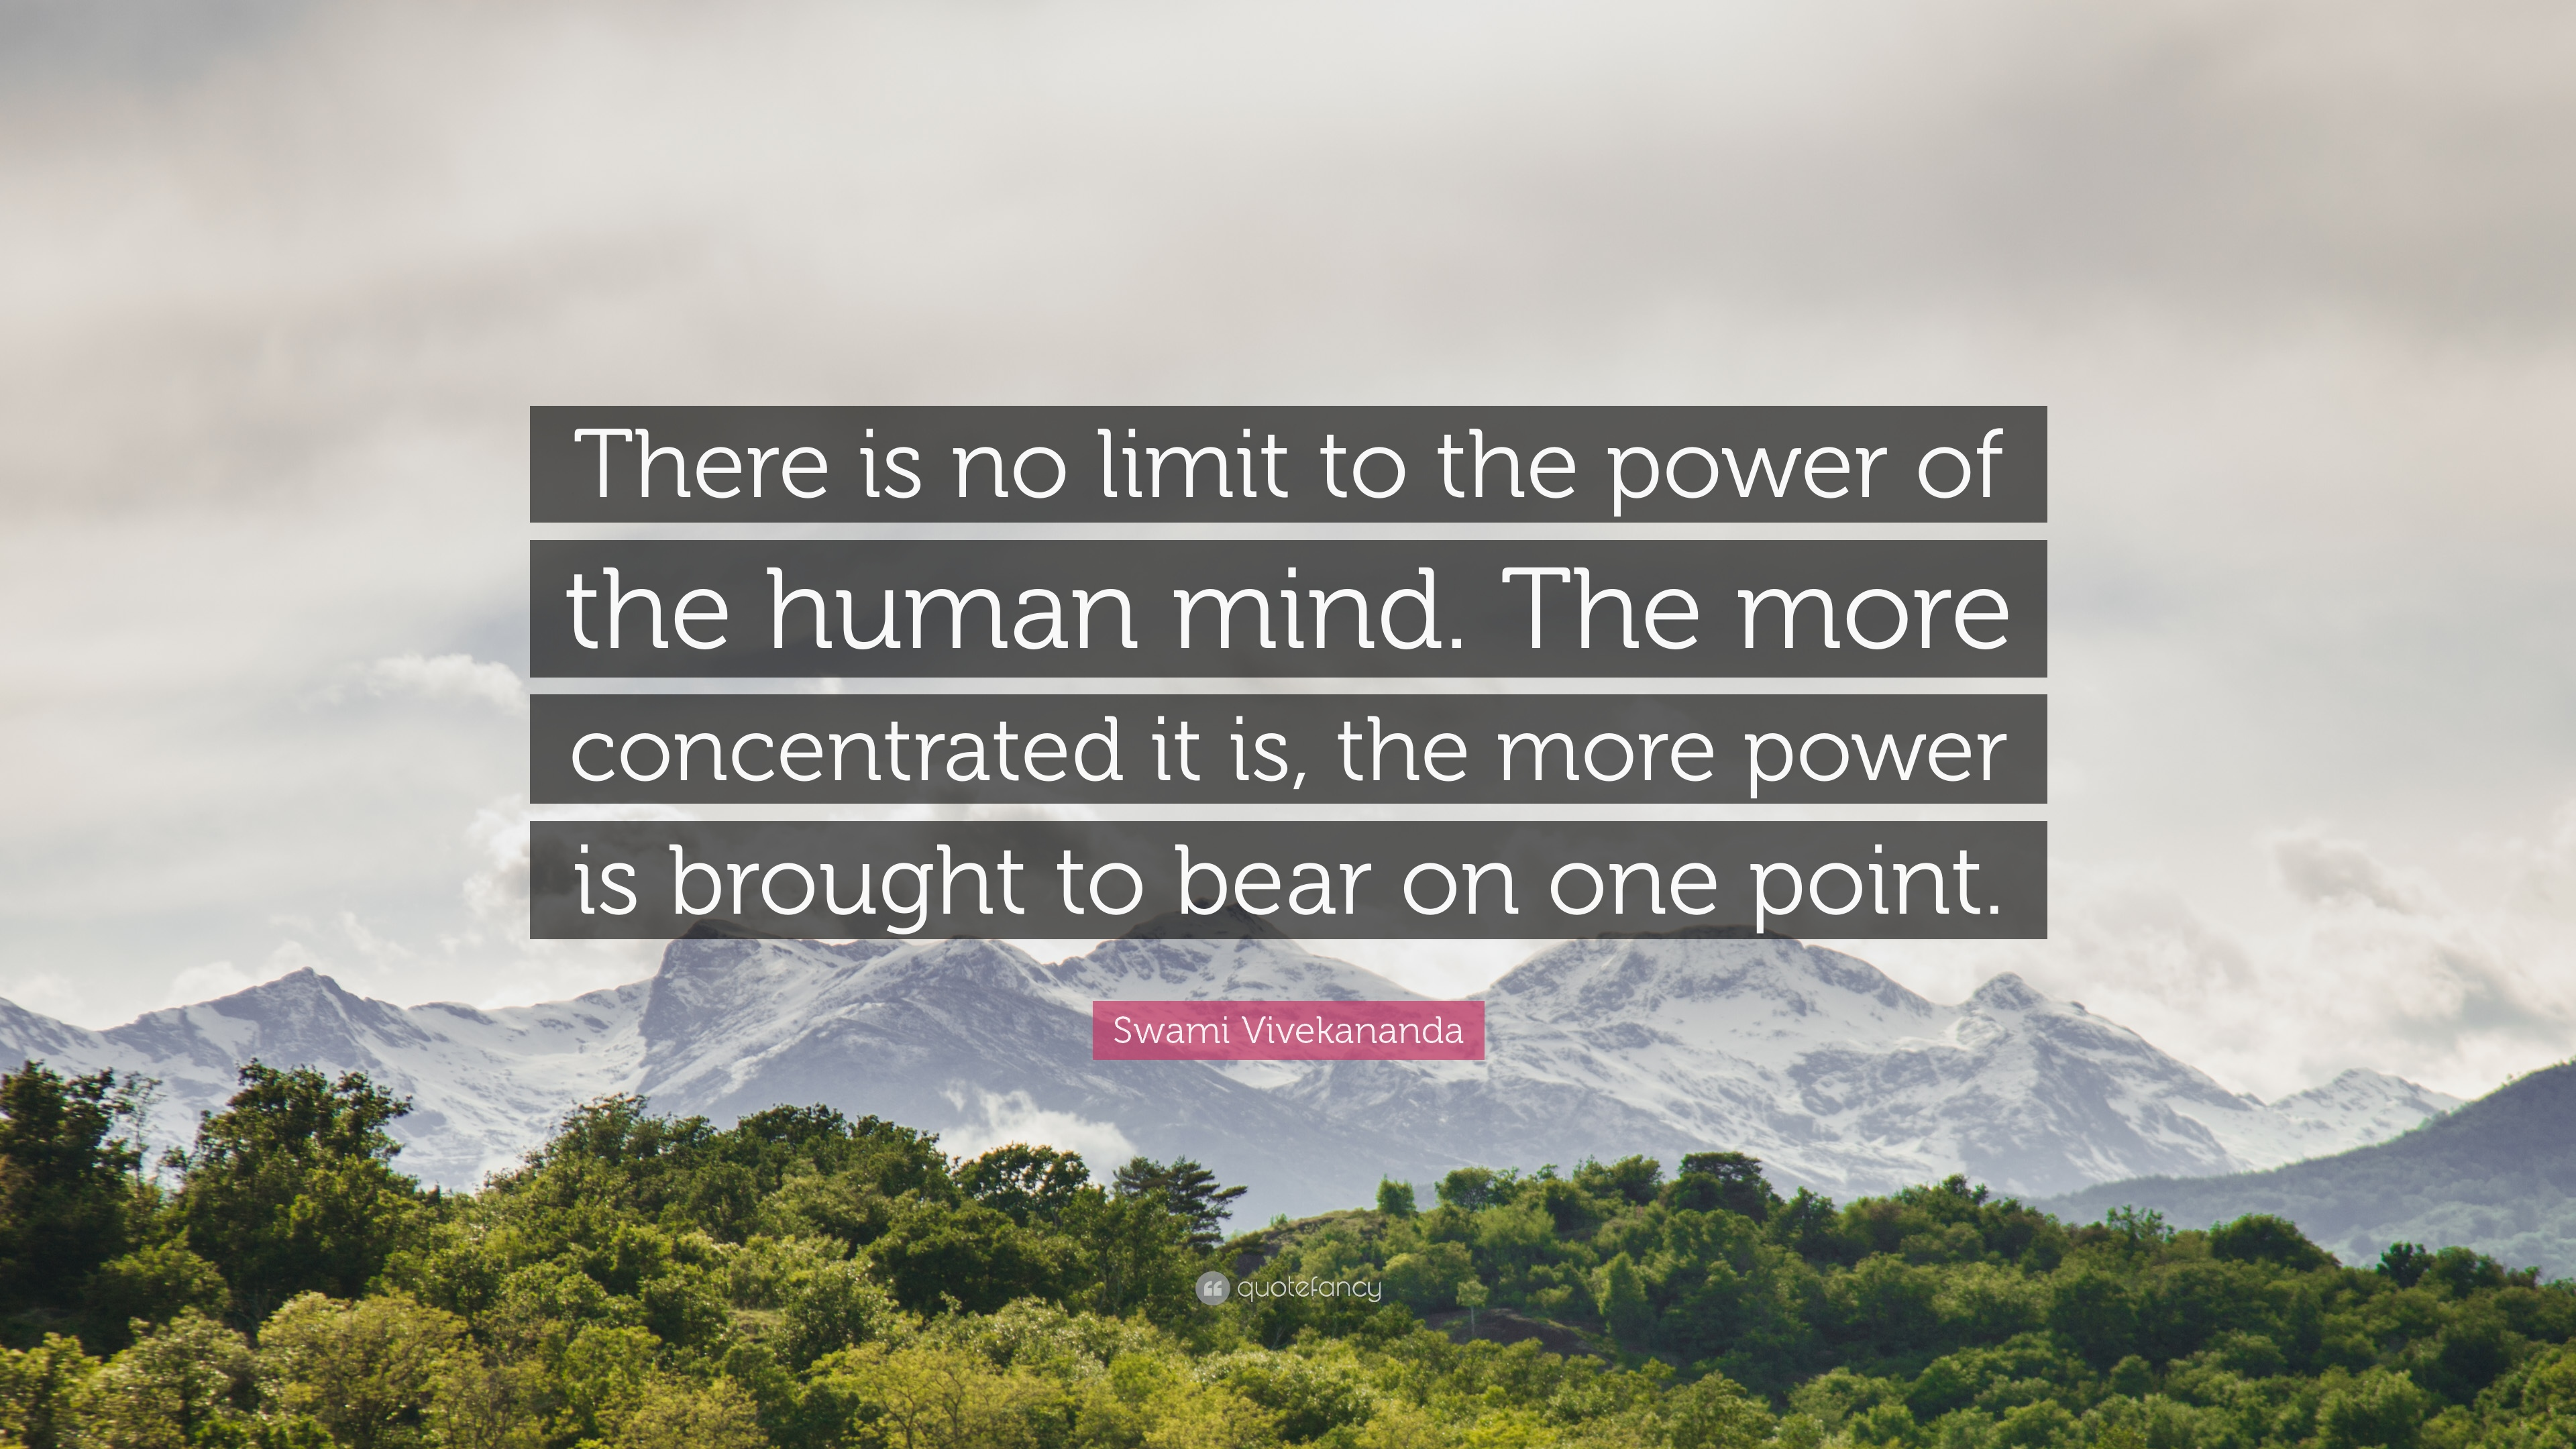 Swami Vivekananda Quote There Is No Limit To The Power Of The